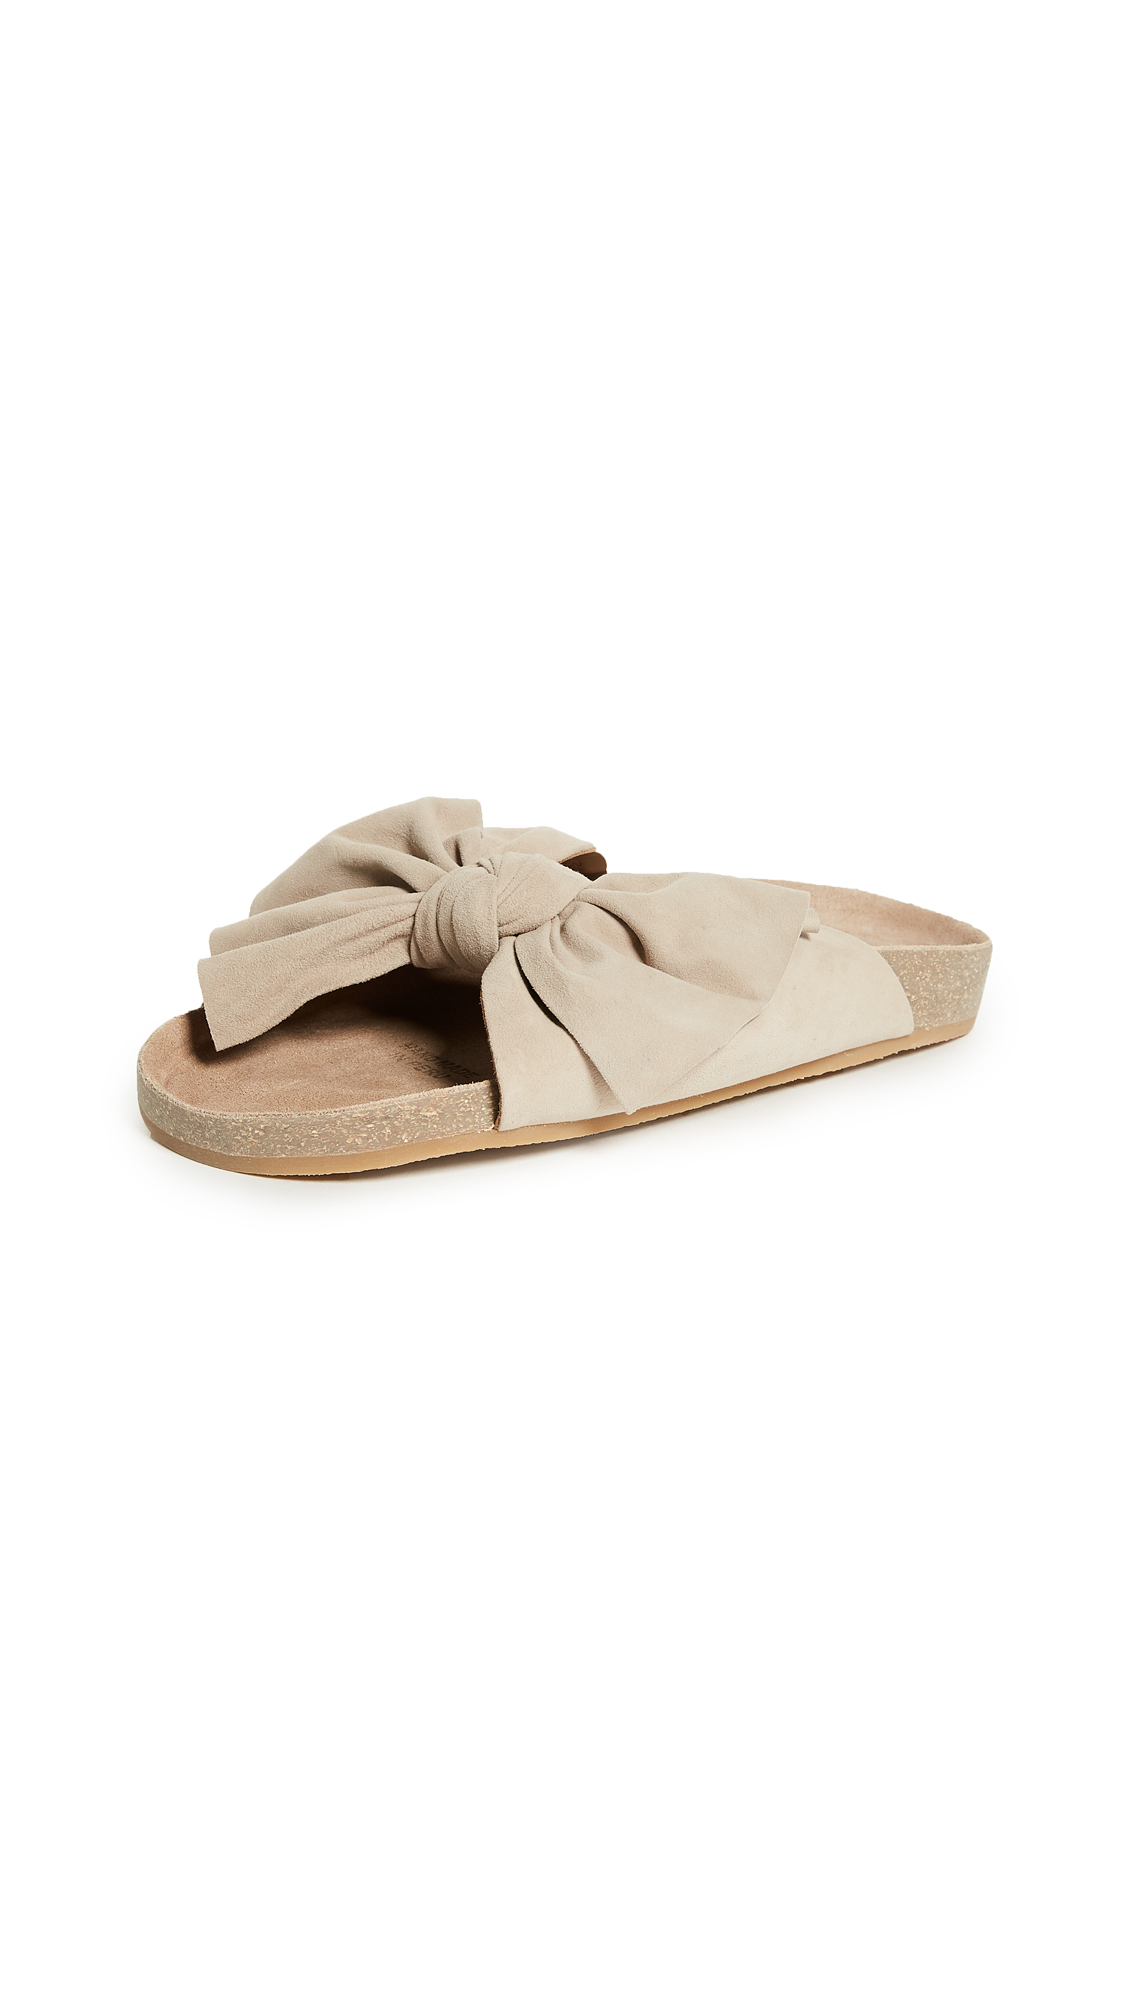 Ulla Johnson Ingrid Slides In Taupe